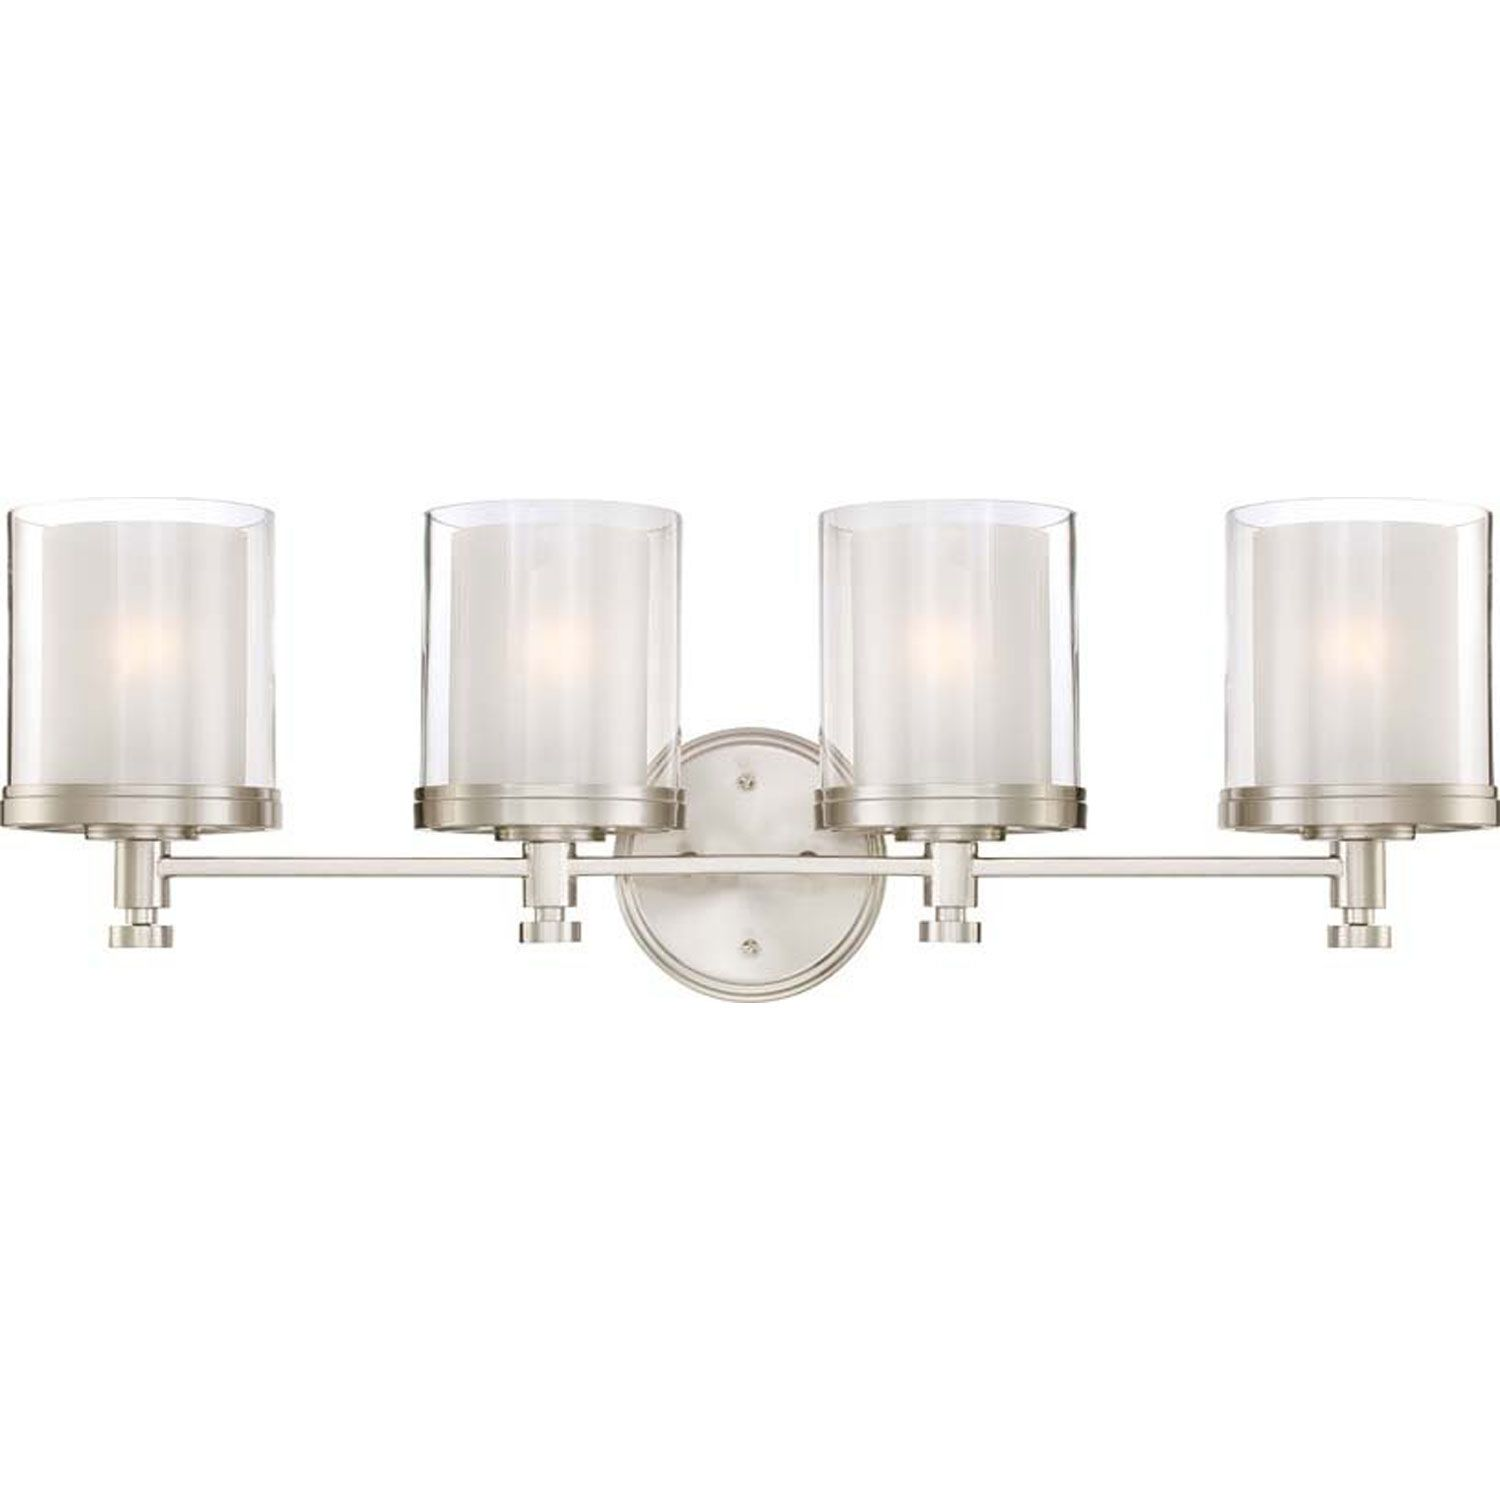 Nuvo Lighting Decker Four Light Bathroom Fixture With Clear And Frosted  Brushed Nickel Indoor Lighting Bathroom Fixtures Vanity Light